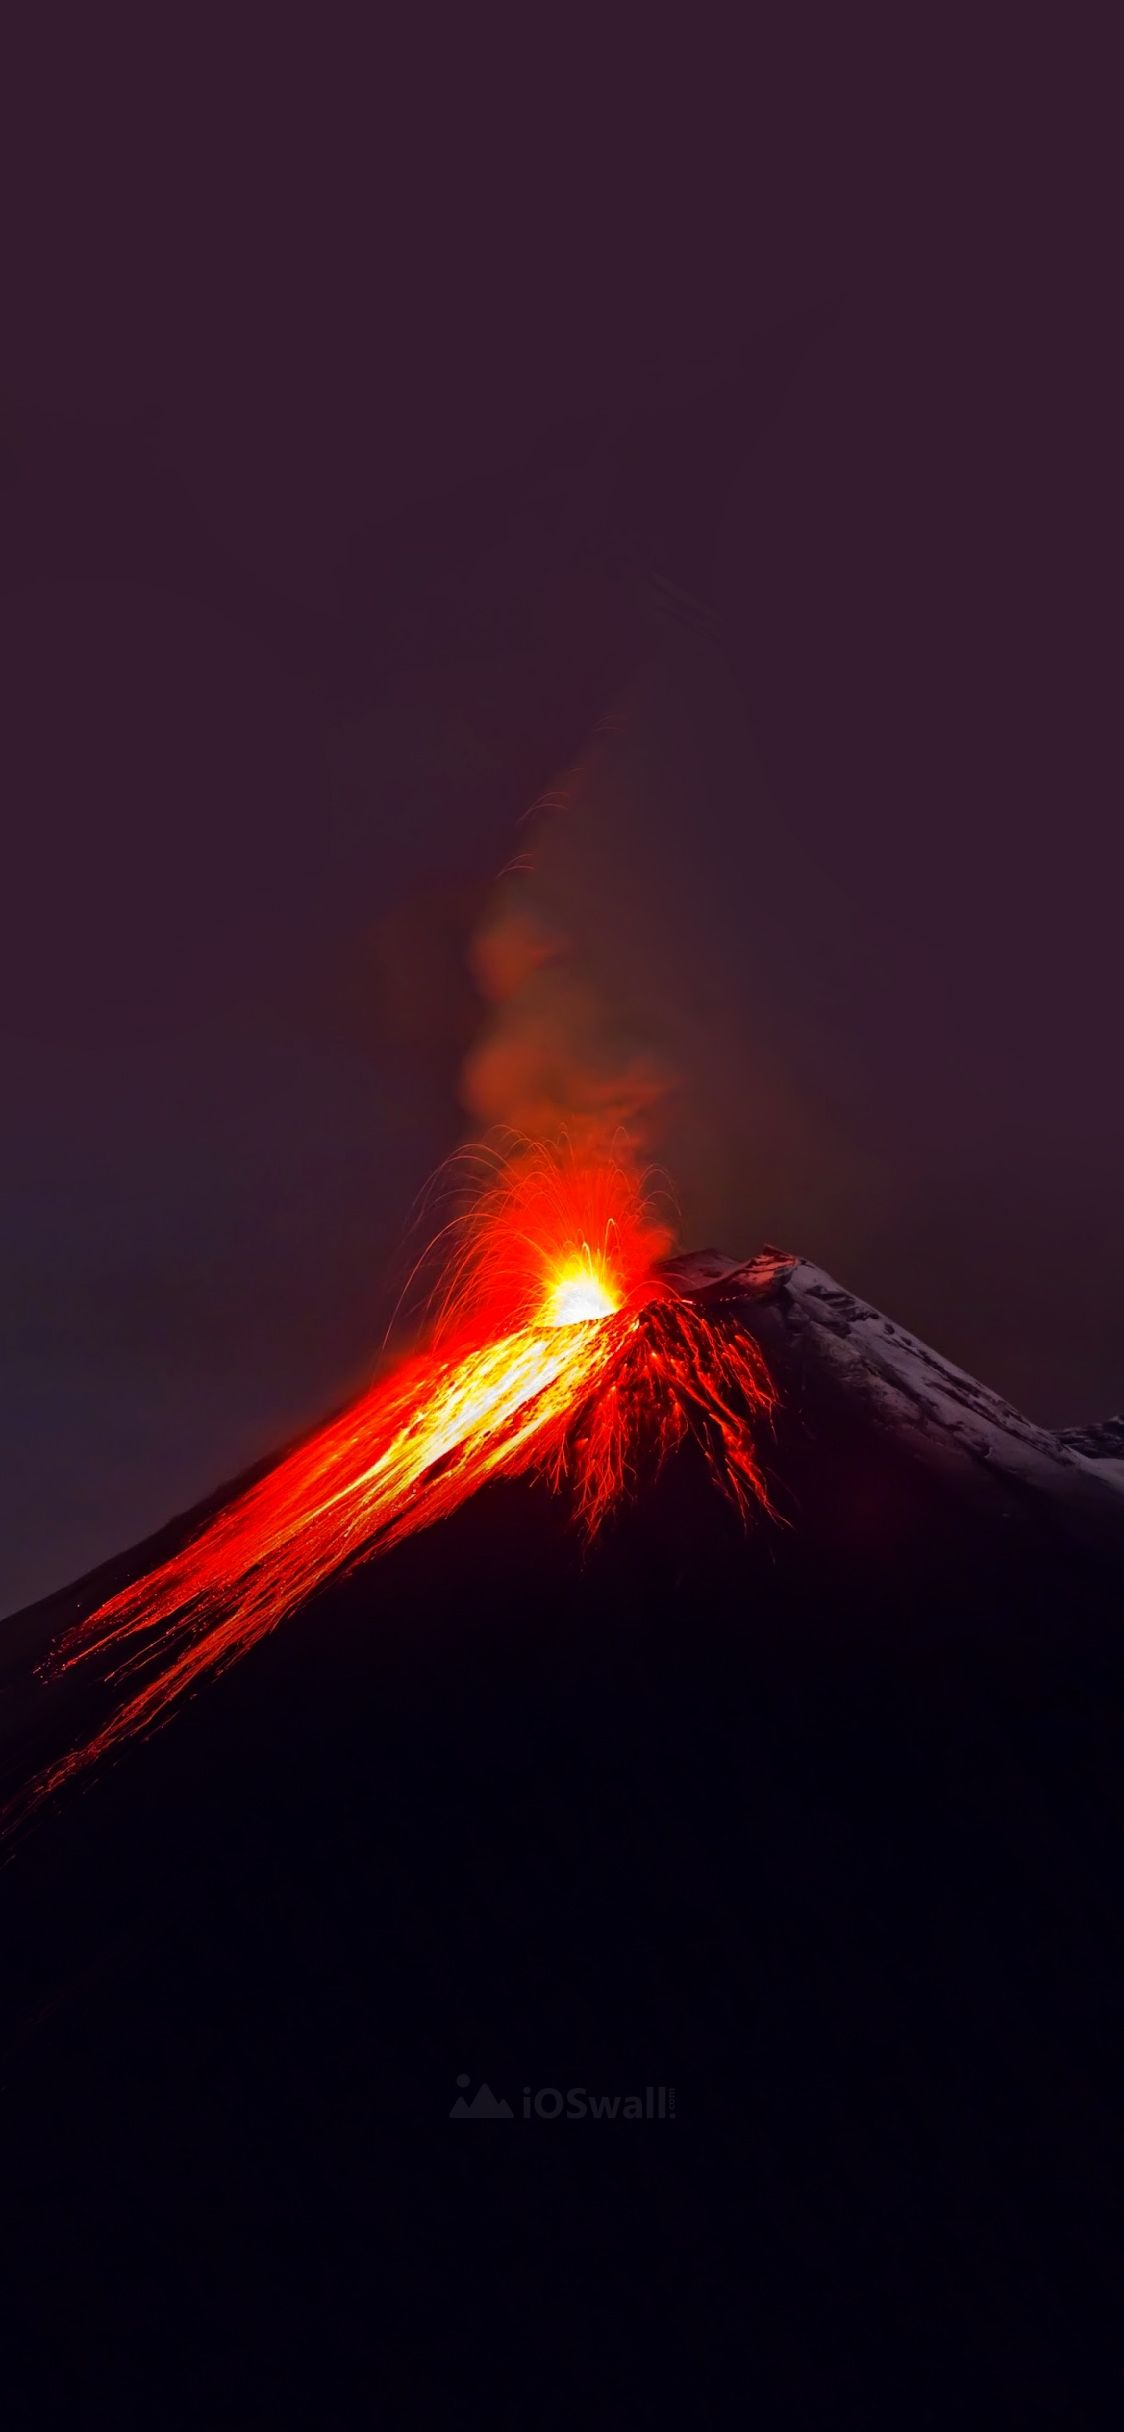 Best volcano wallpaper for iPhone x iOSwall wallpapers in 2019 1124x2432